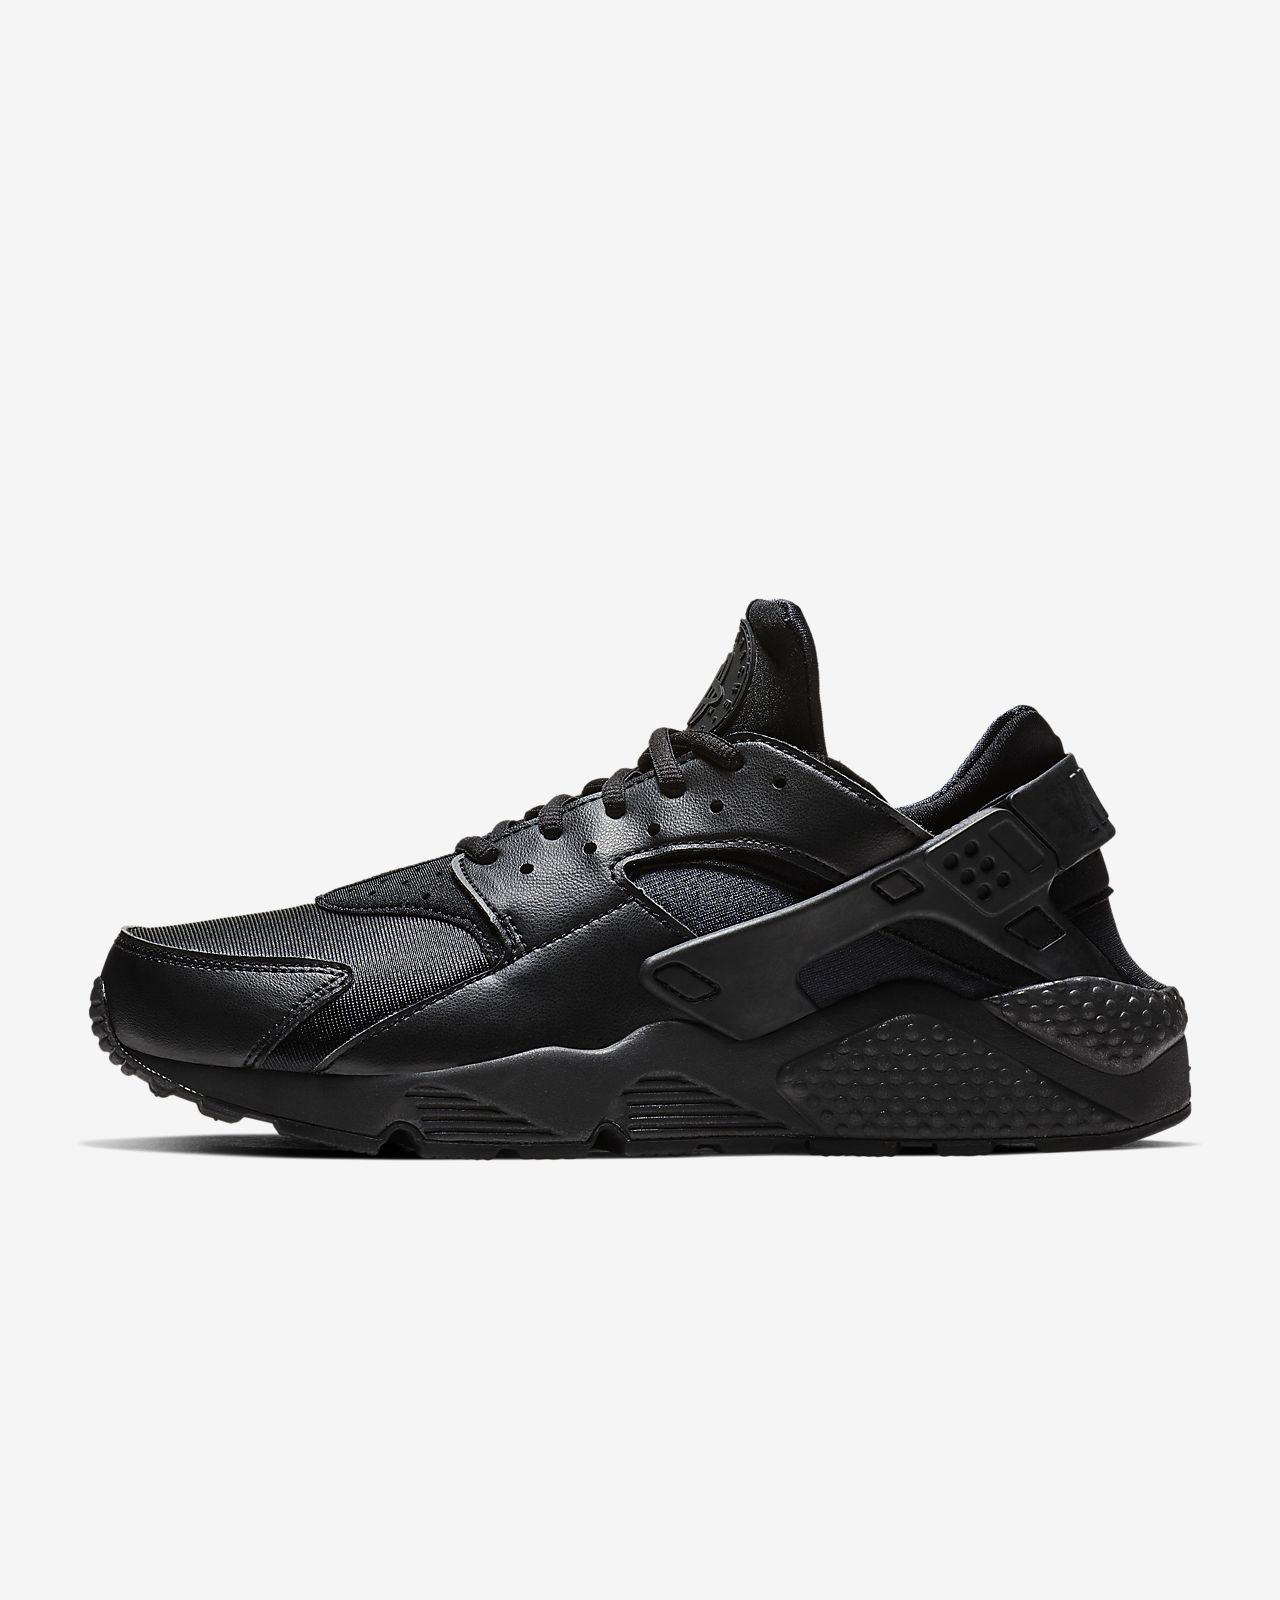 3775666eac58 Nike Air Huarache Women s Shoe. Nike.com